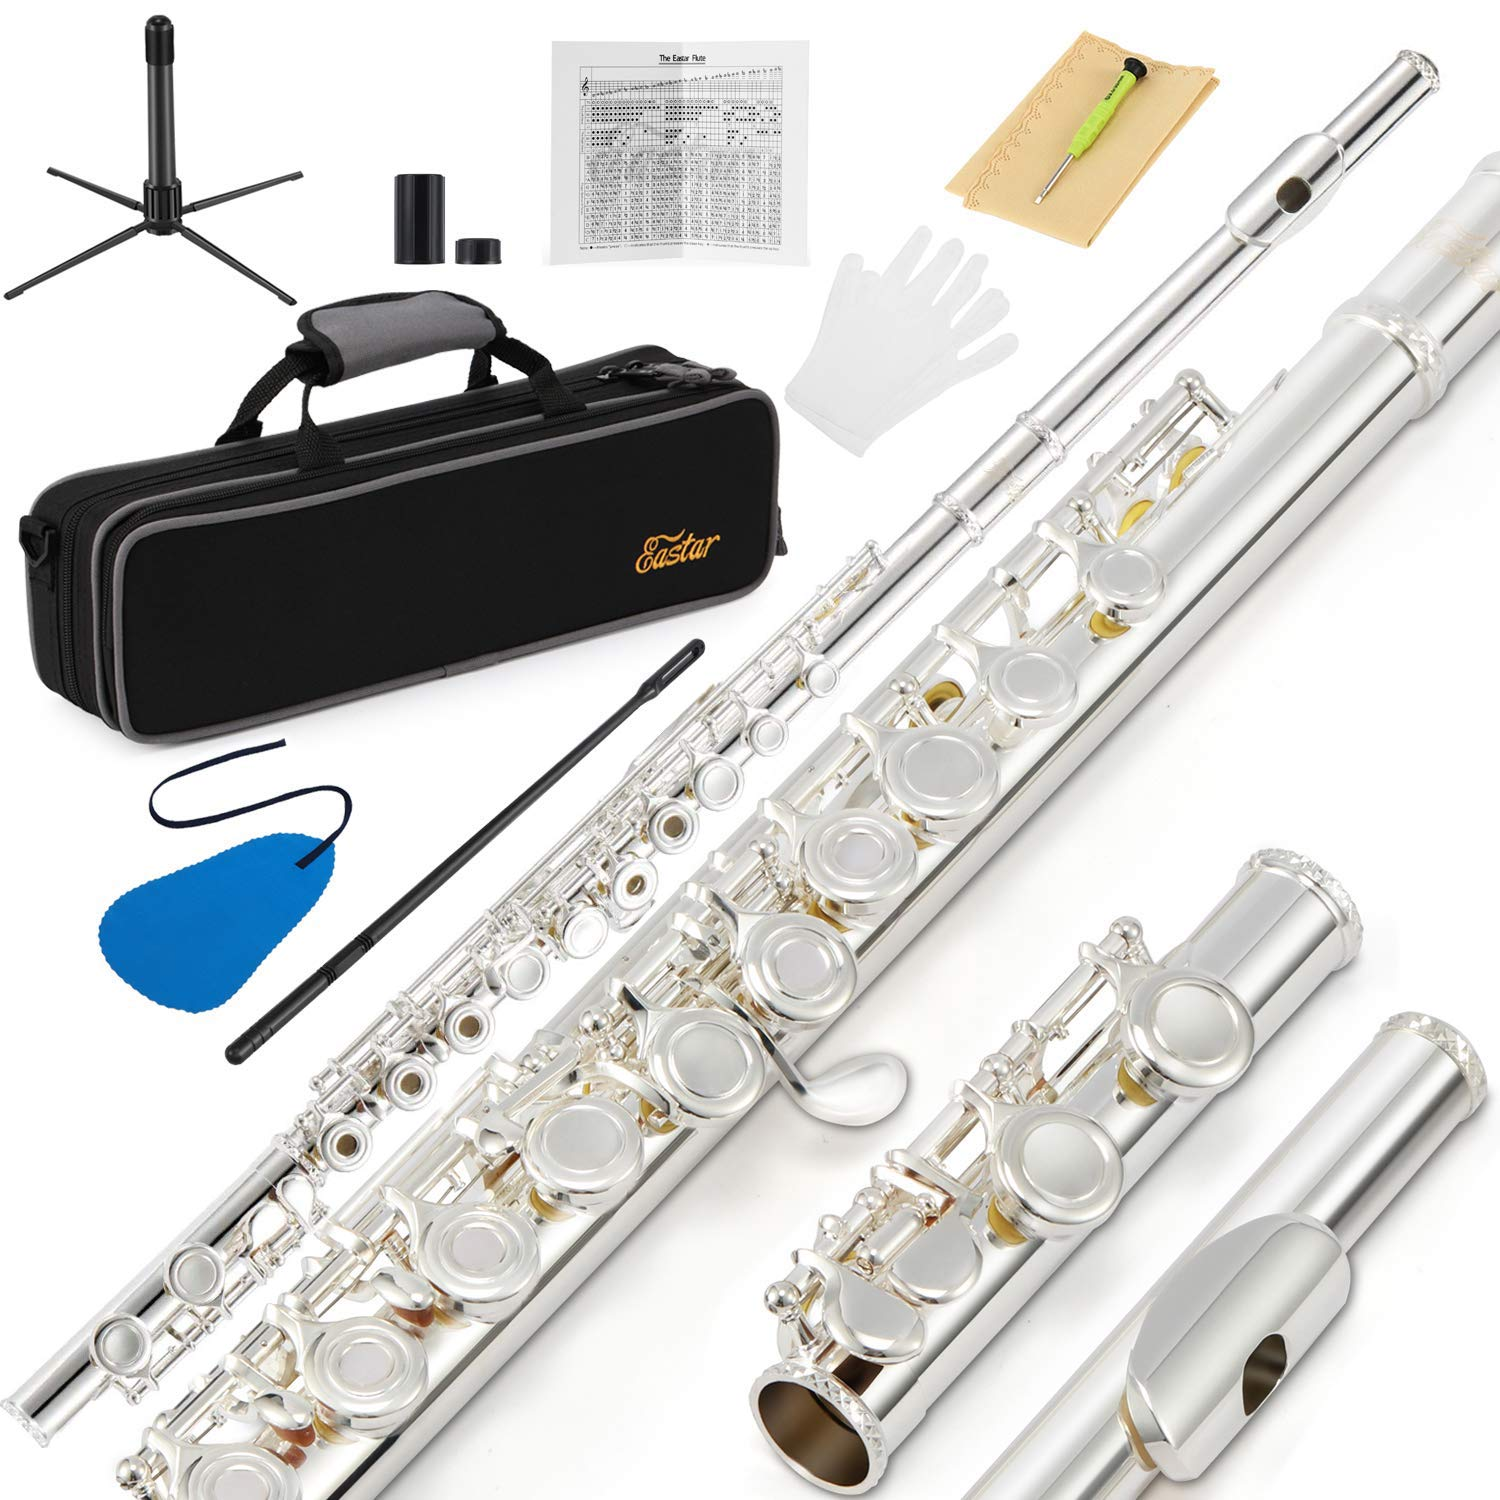 Eastar EFL-2 Open/Close Hole C Flutes 16 Keys Silver Plated Beginner Flute Set with Fingering Chart, Hard Case,Cleaning Rod,Cloth,Flute Swab,Screwdriver and Gloves by Eastar